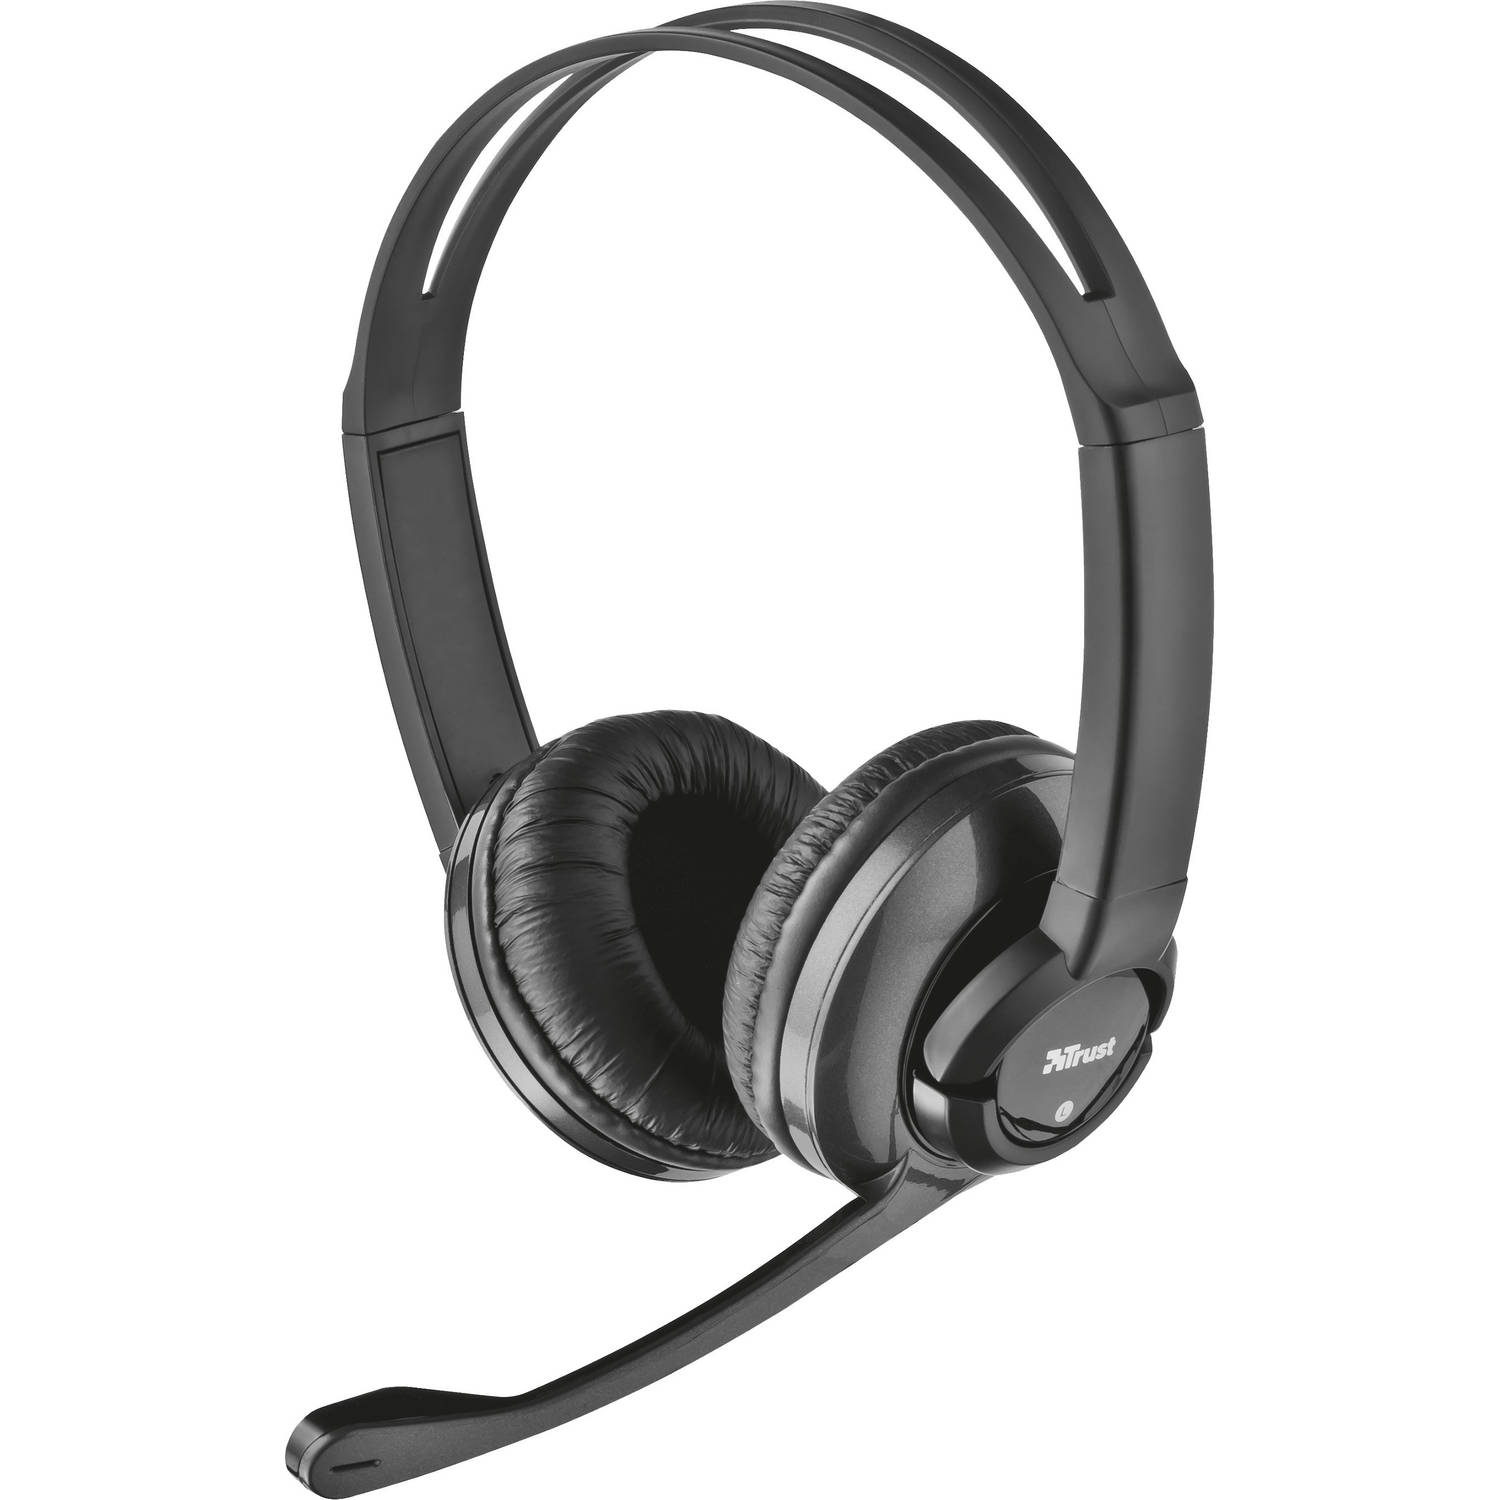 Zaia Headset for PC and laptop